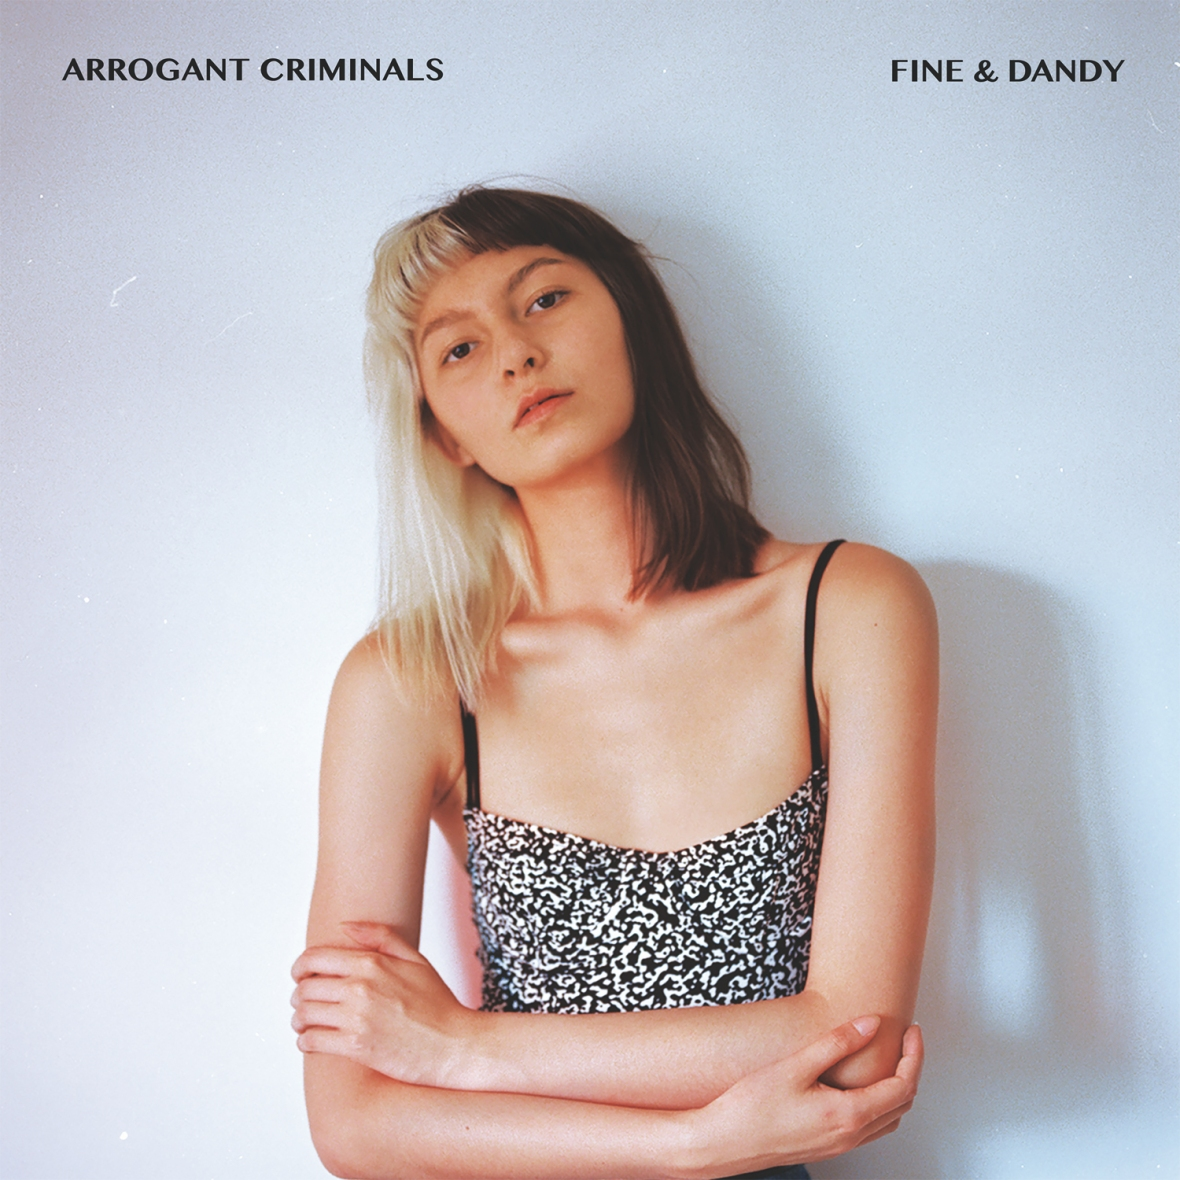 Arrogant Criminals - Fine and Dandy